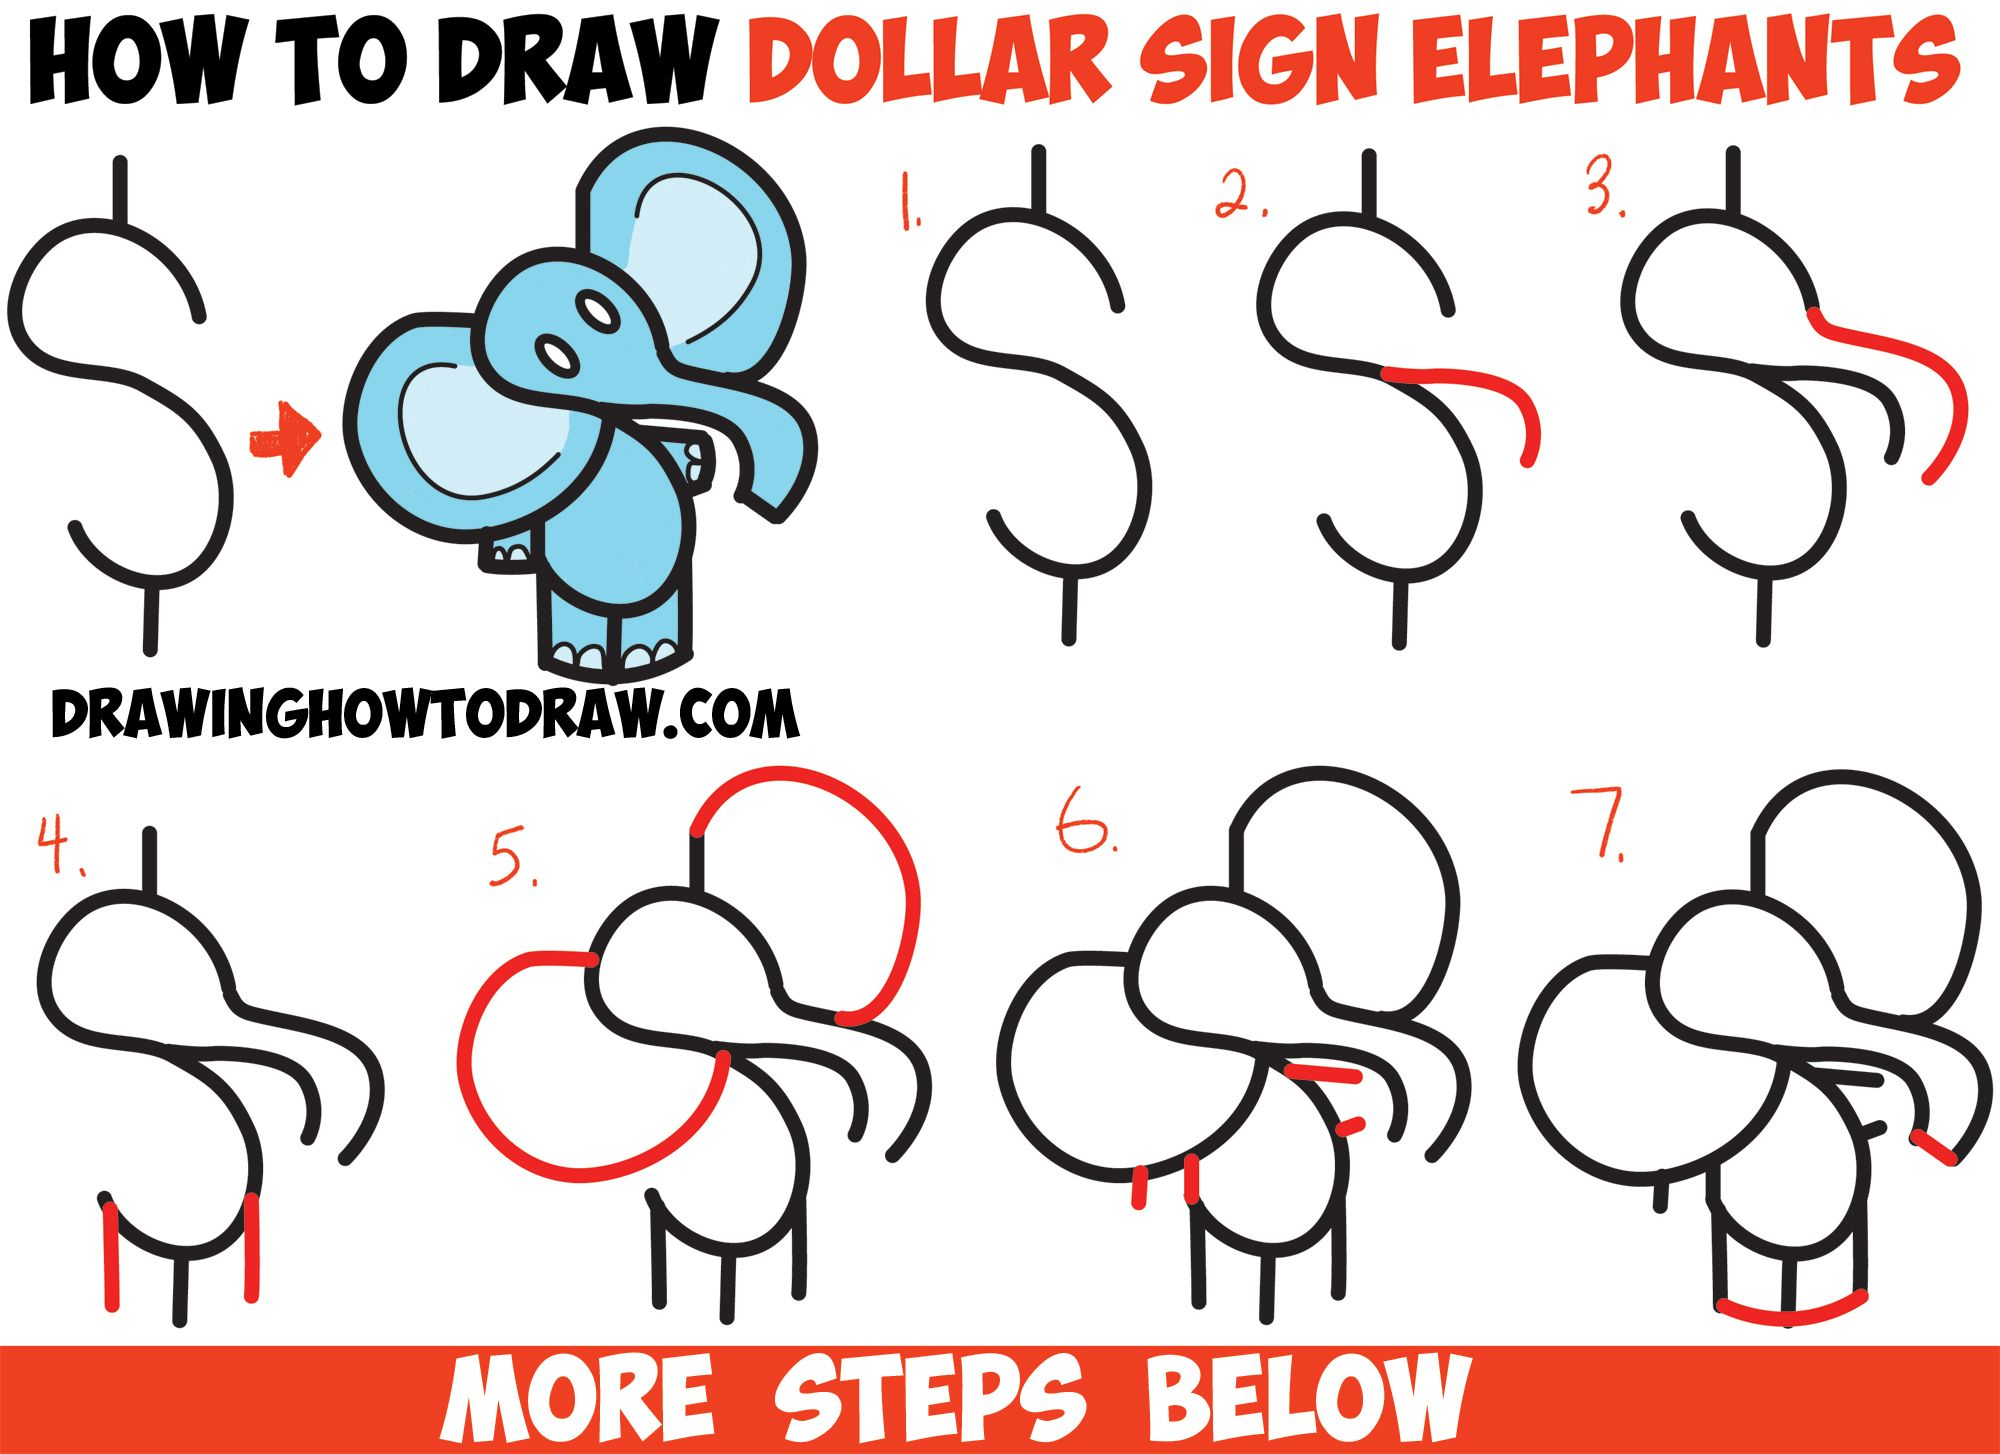 How to Draw Cartoon Elephant from the Dollar Sign - Easy ... - photo#28